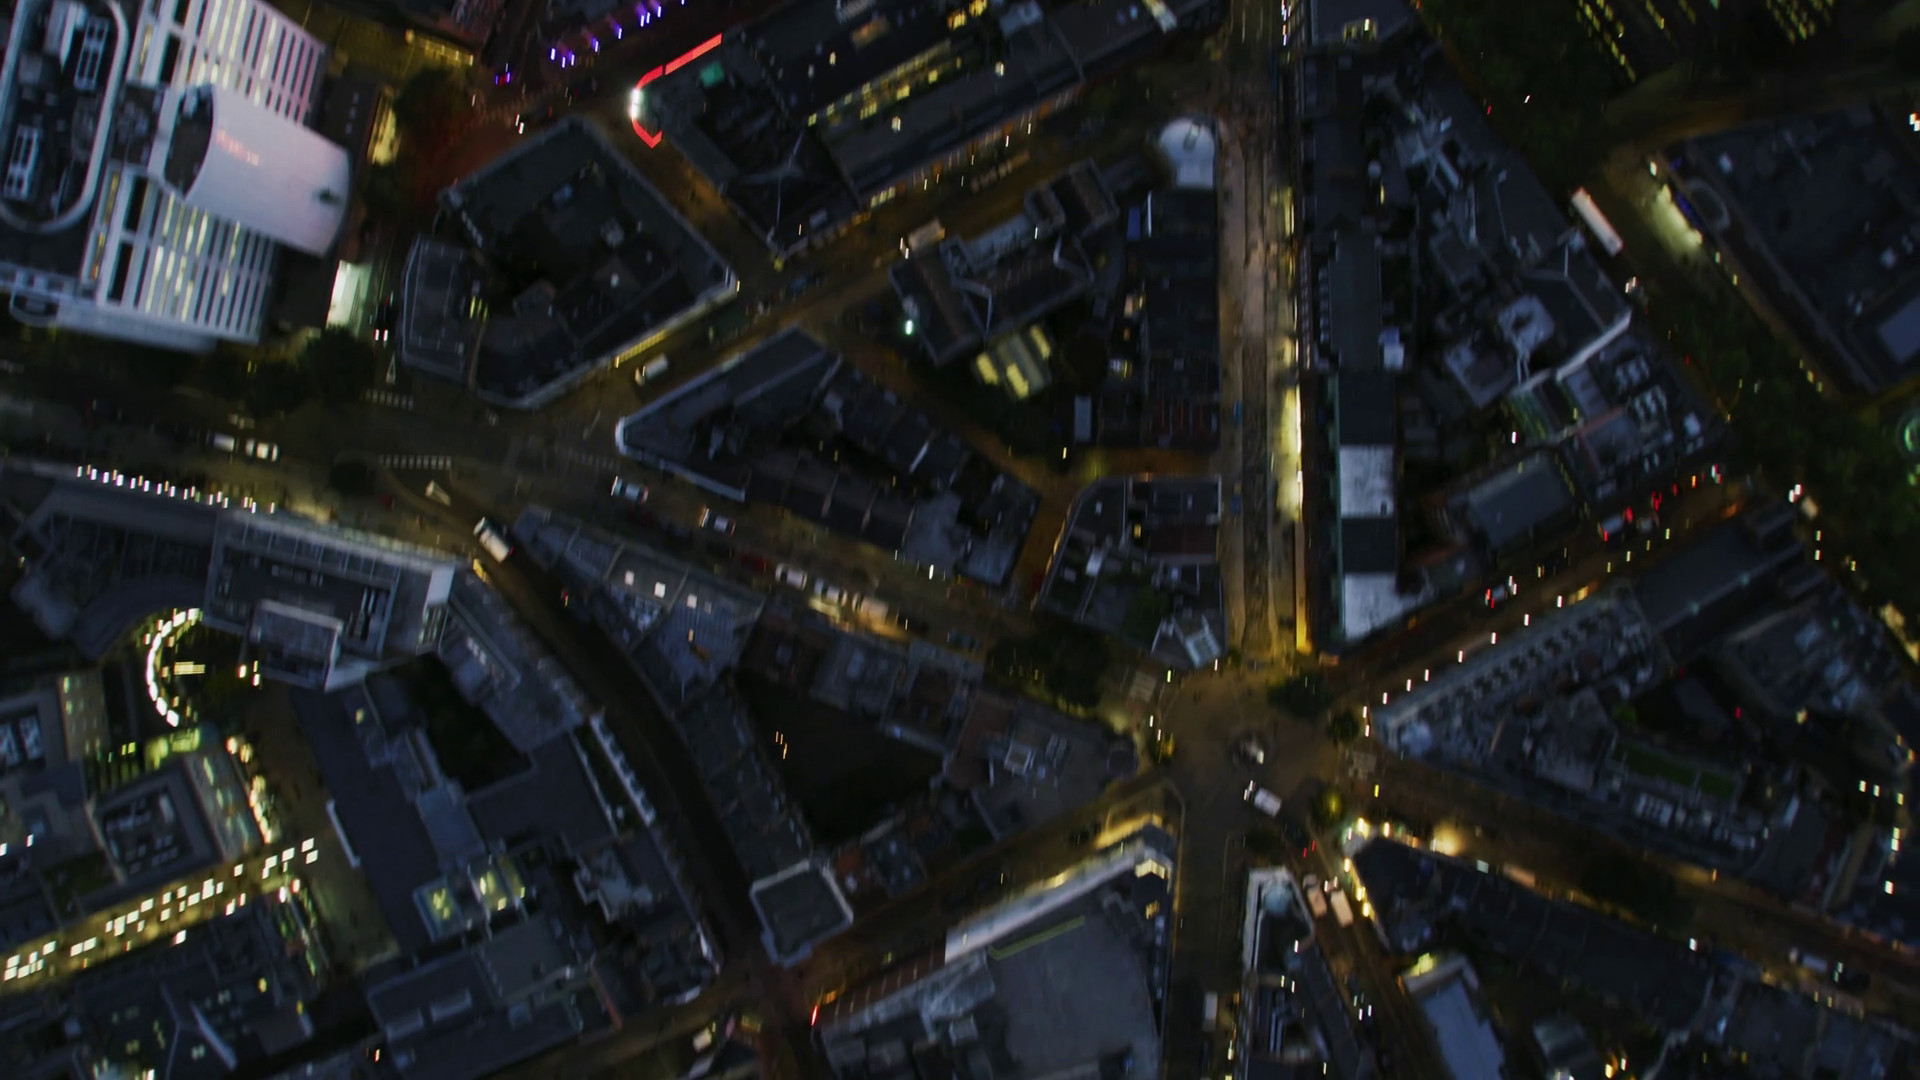 1920x1080 Aerial overhead rooftop view London streets at night Stock Video Footage -  Storyblocks Video